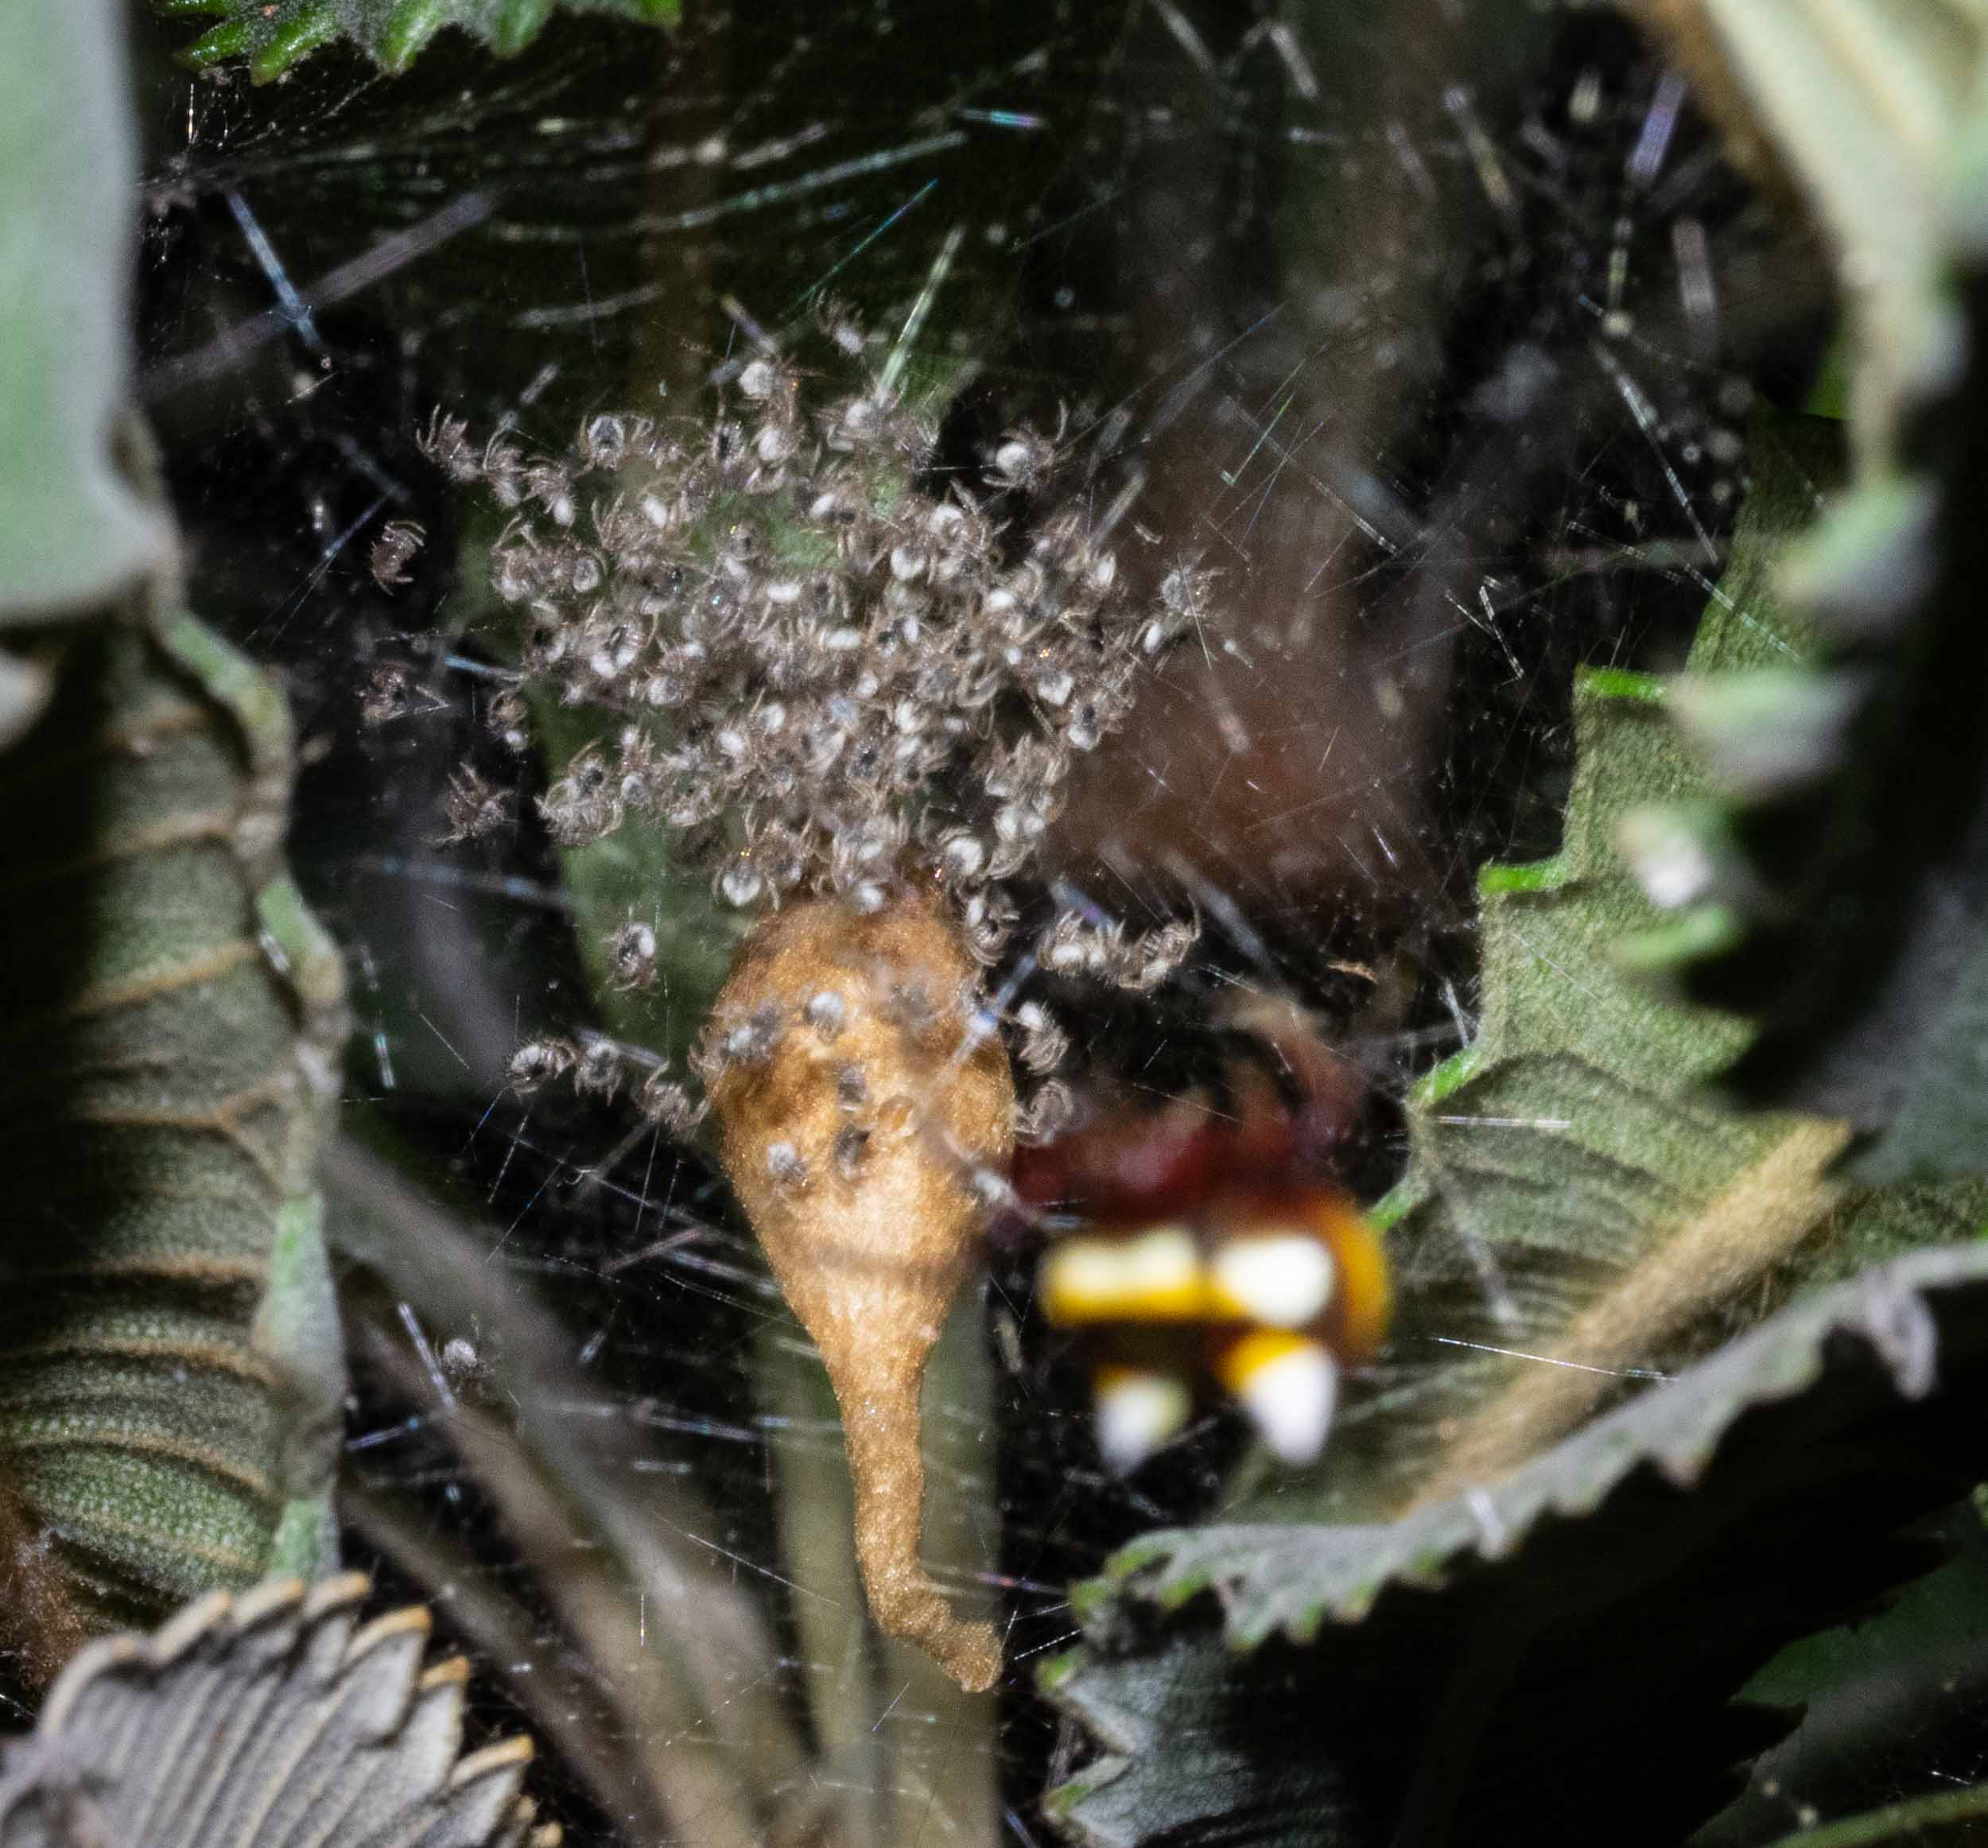 Poecilopachys australasia , the 'Two-spined Spider' - egg case, with recently hatched spiderlings